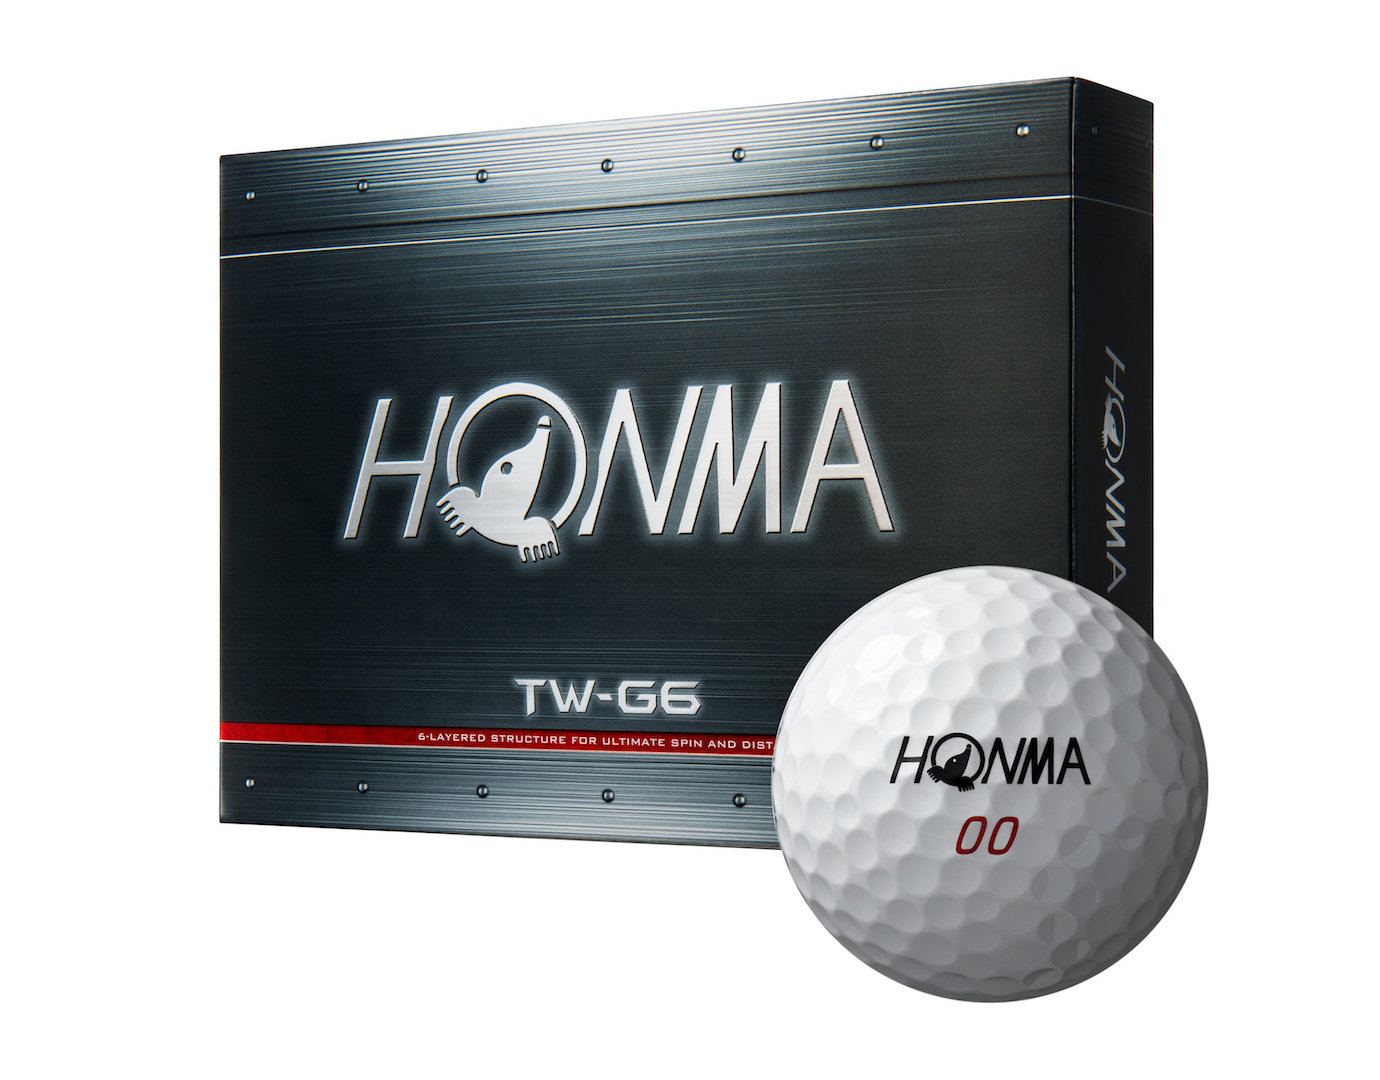 The Honma PP Putters and TW-G6 Golf Balls